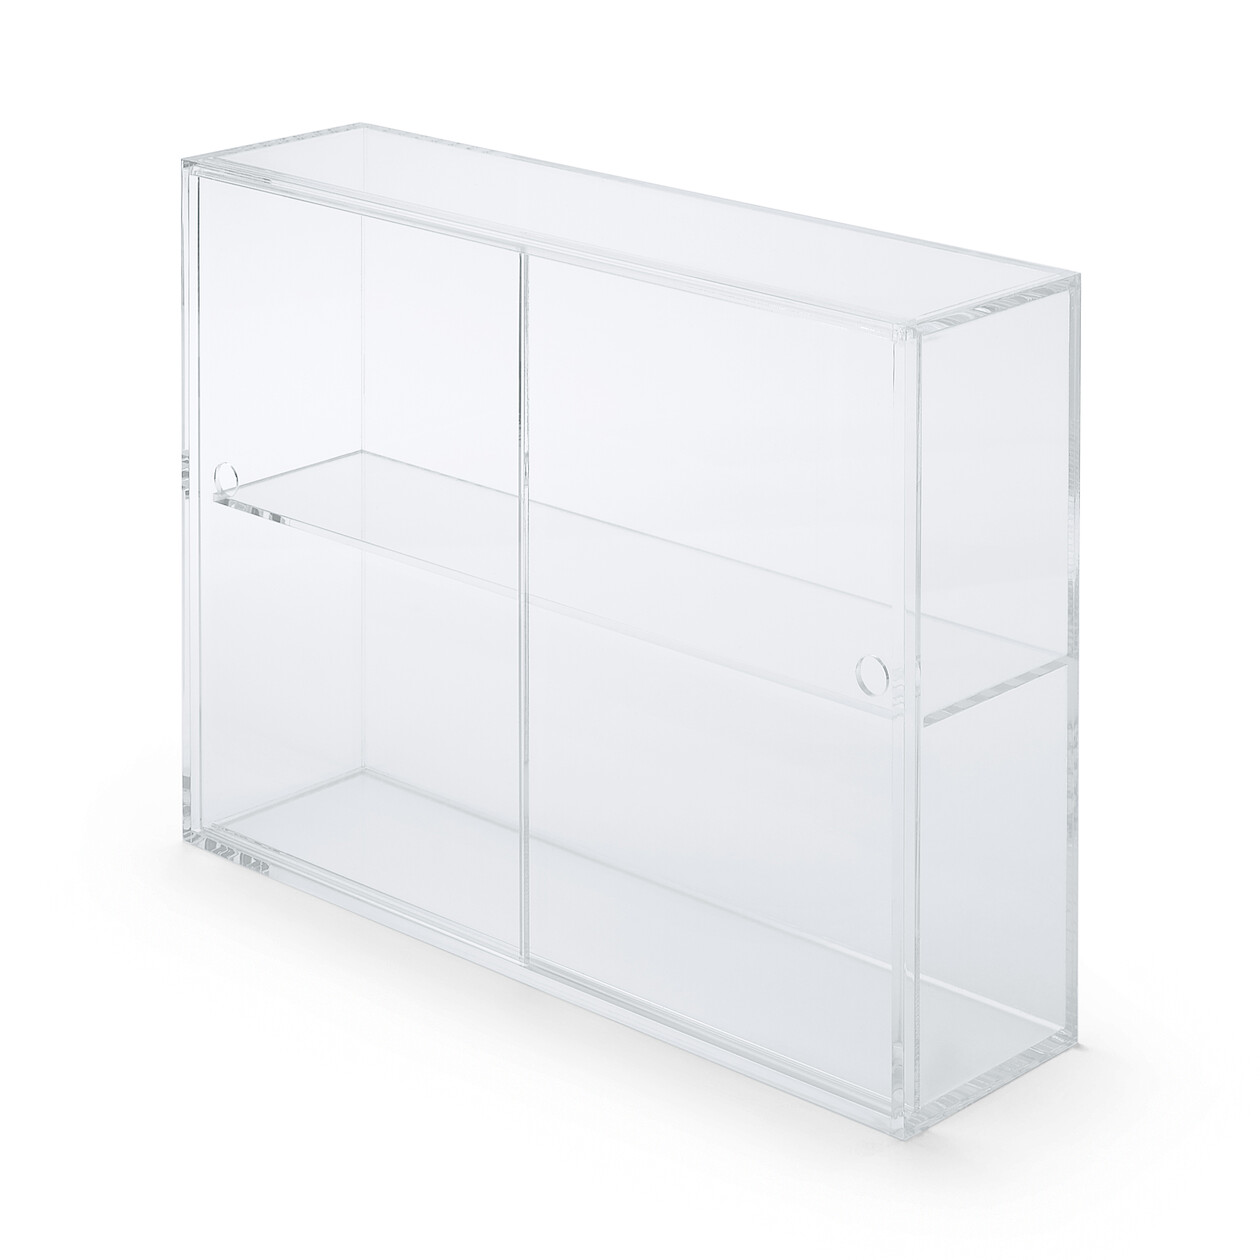 Acrylic Display Case With Sliding Doors L Muji